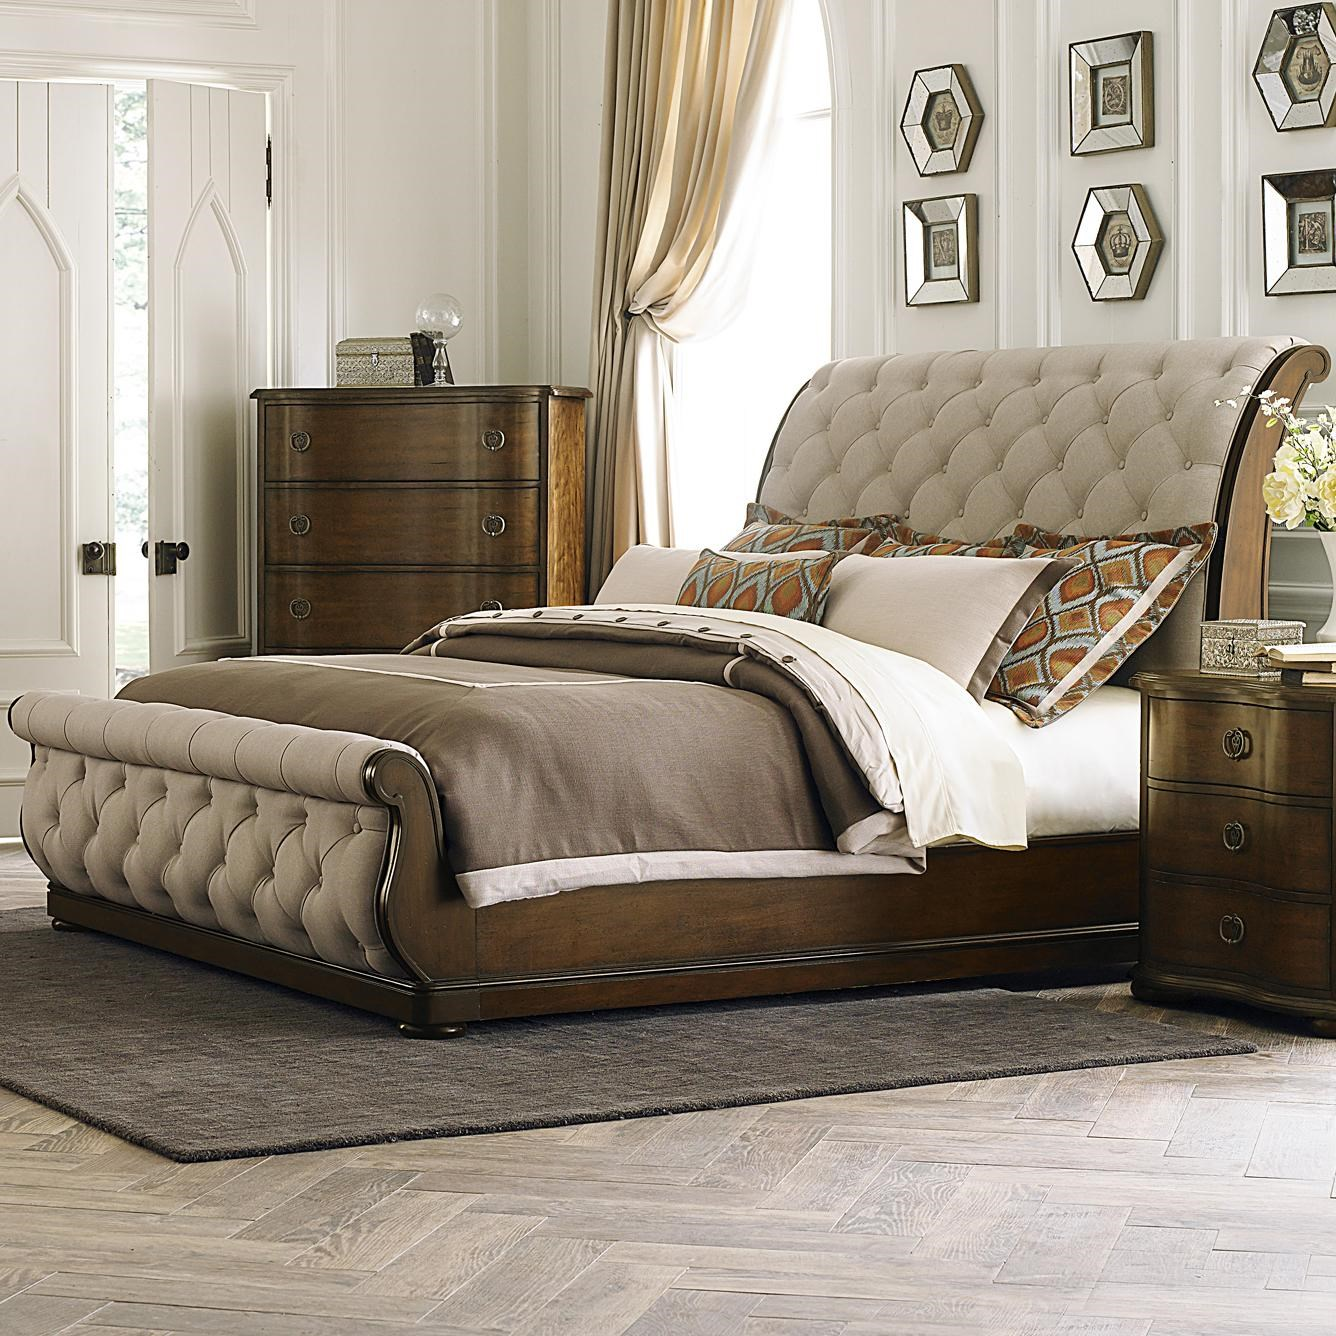 Genial Liberty Furniture Cotswold King Sleigh Bed